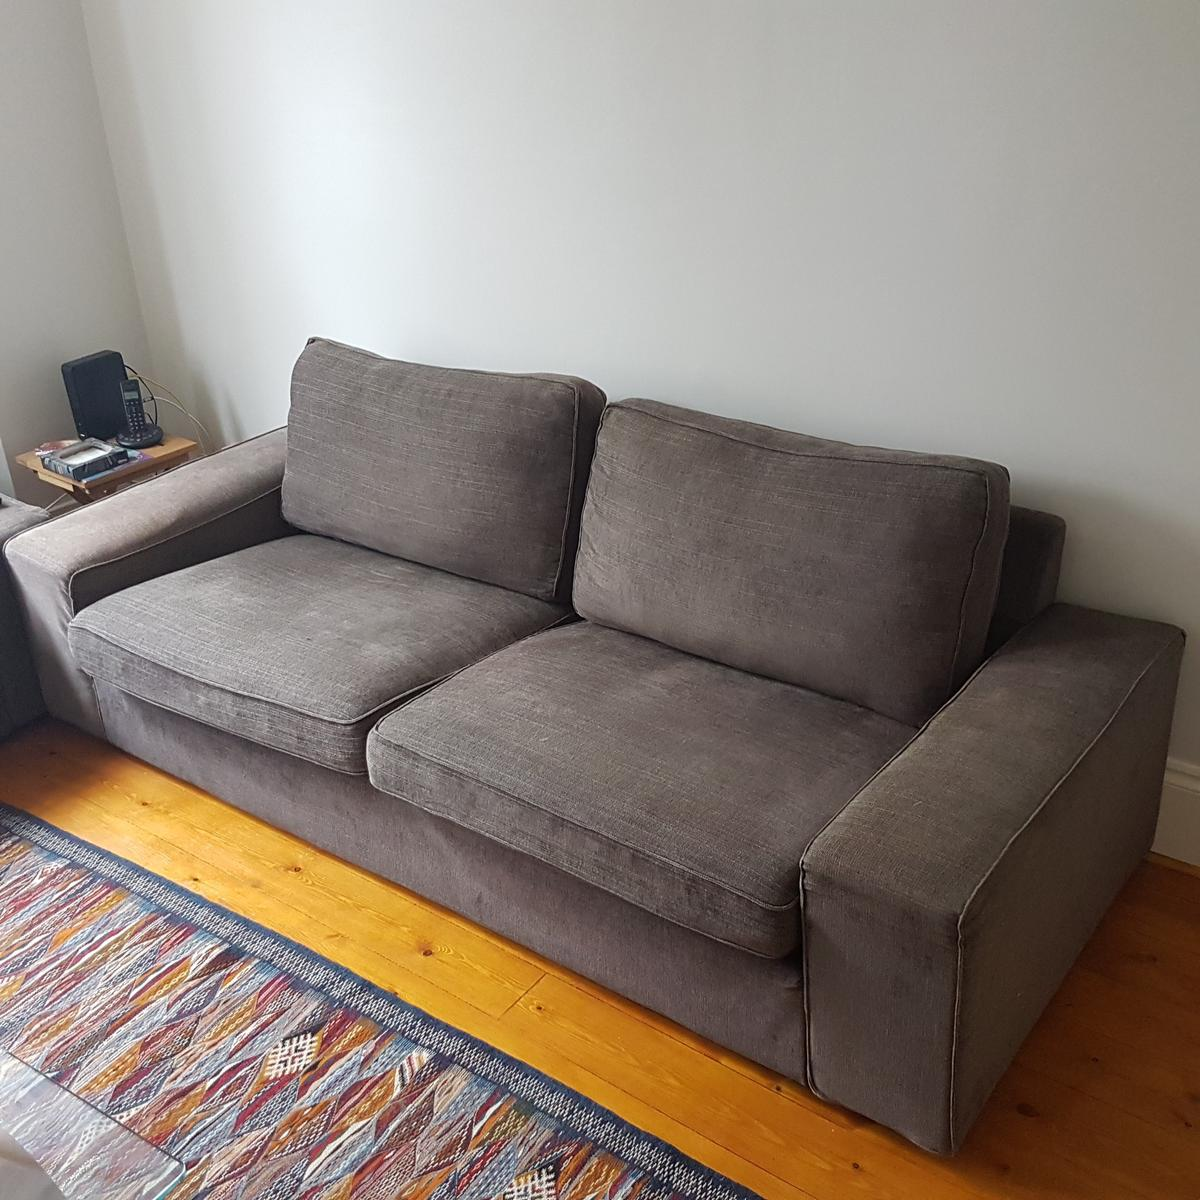 Groovy Ikea Kivik 3 Seat Sofa Pabps2019 Chair Design Images Pabps2019Com